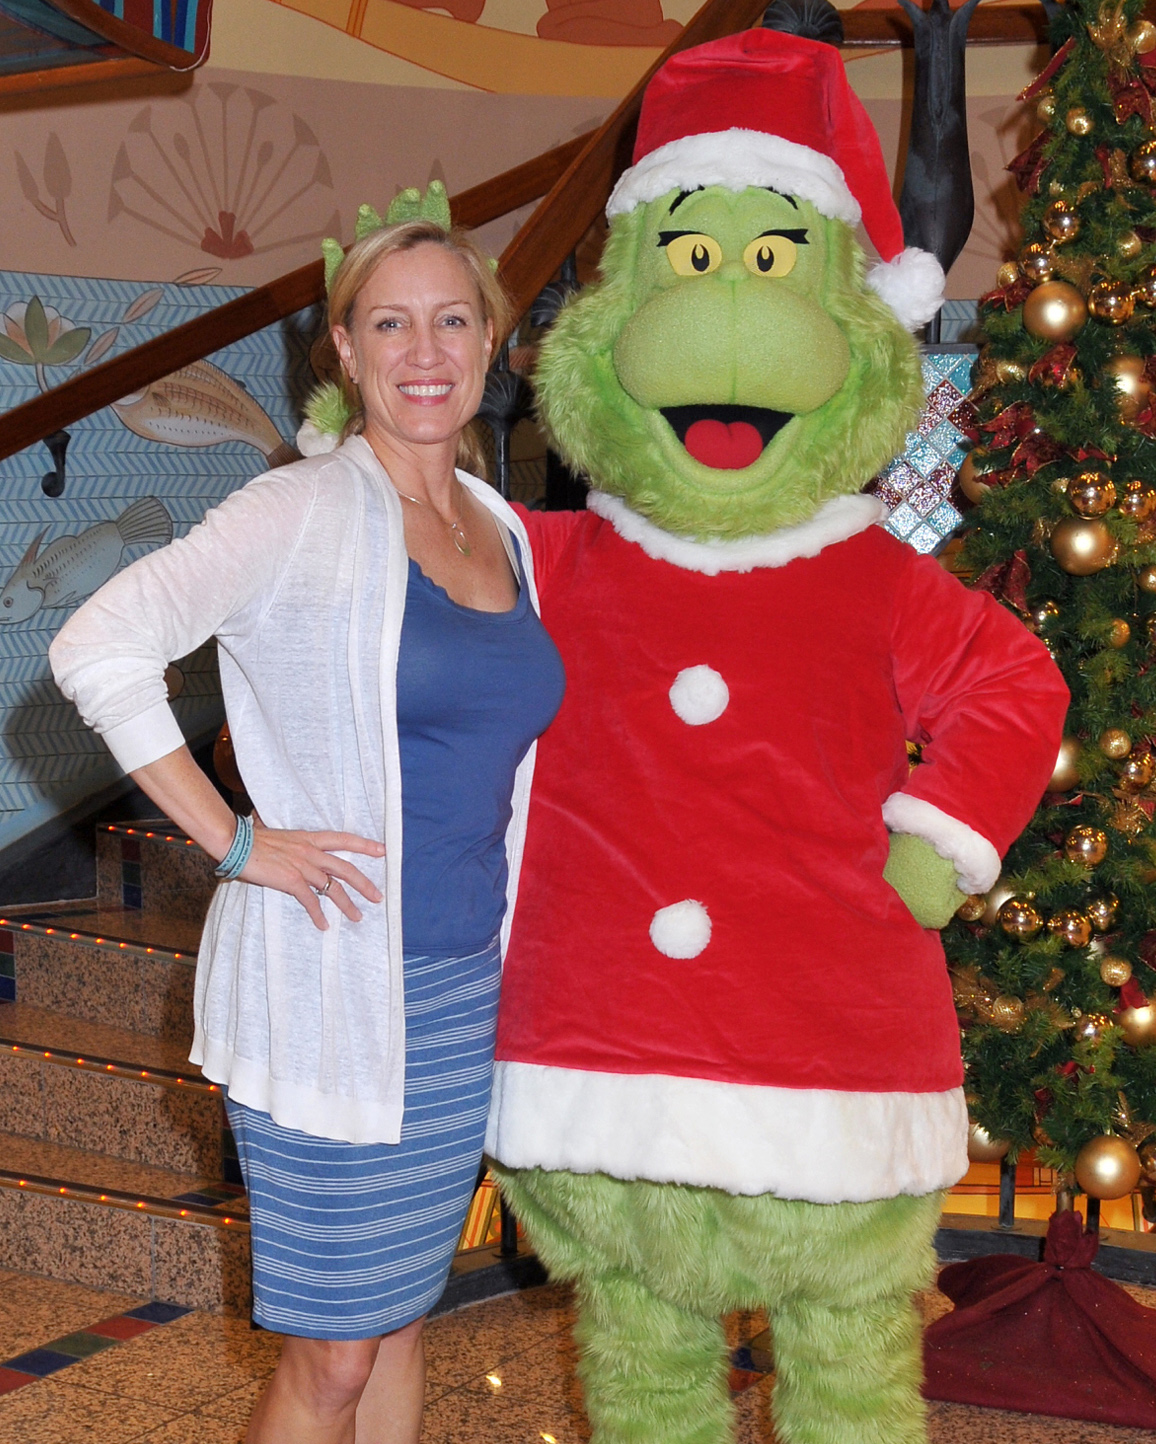 Jennifer Vandekreeke and the Grinch on Carnival Spirit